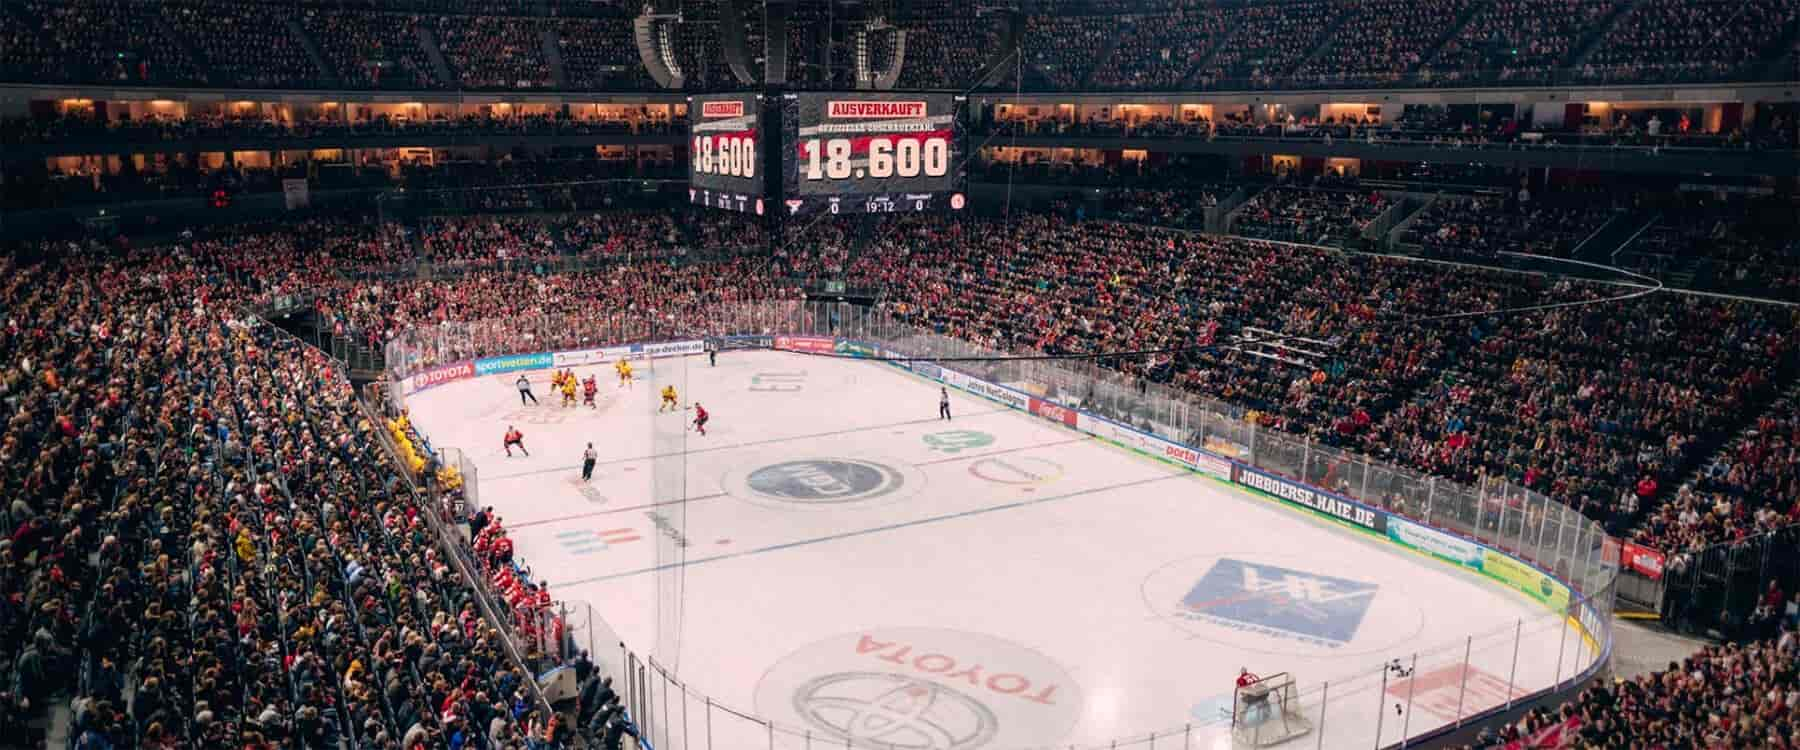 Stadion Haie Fans